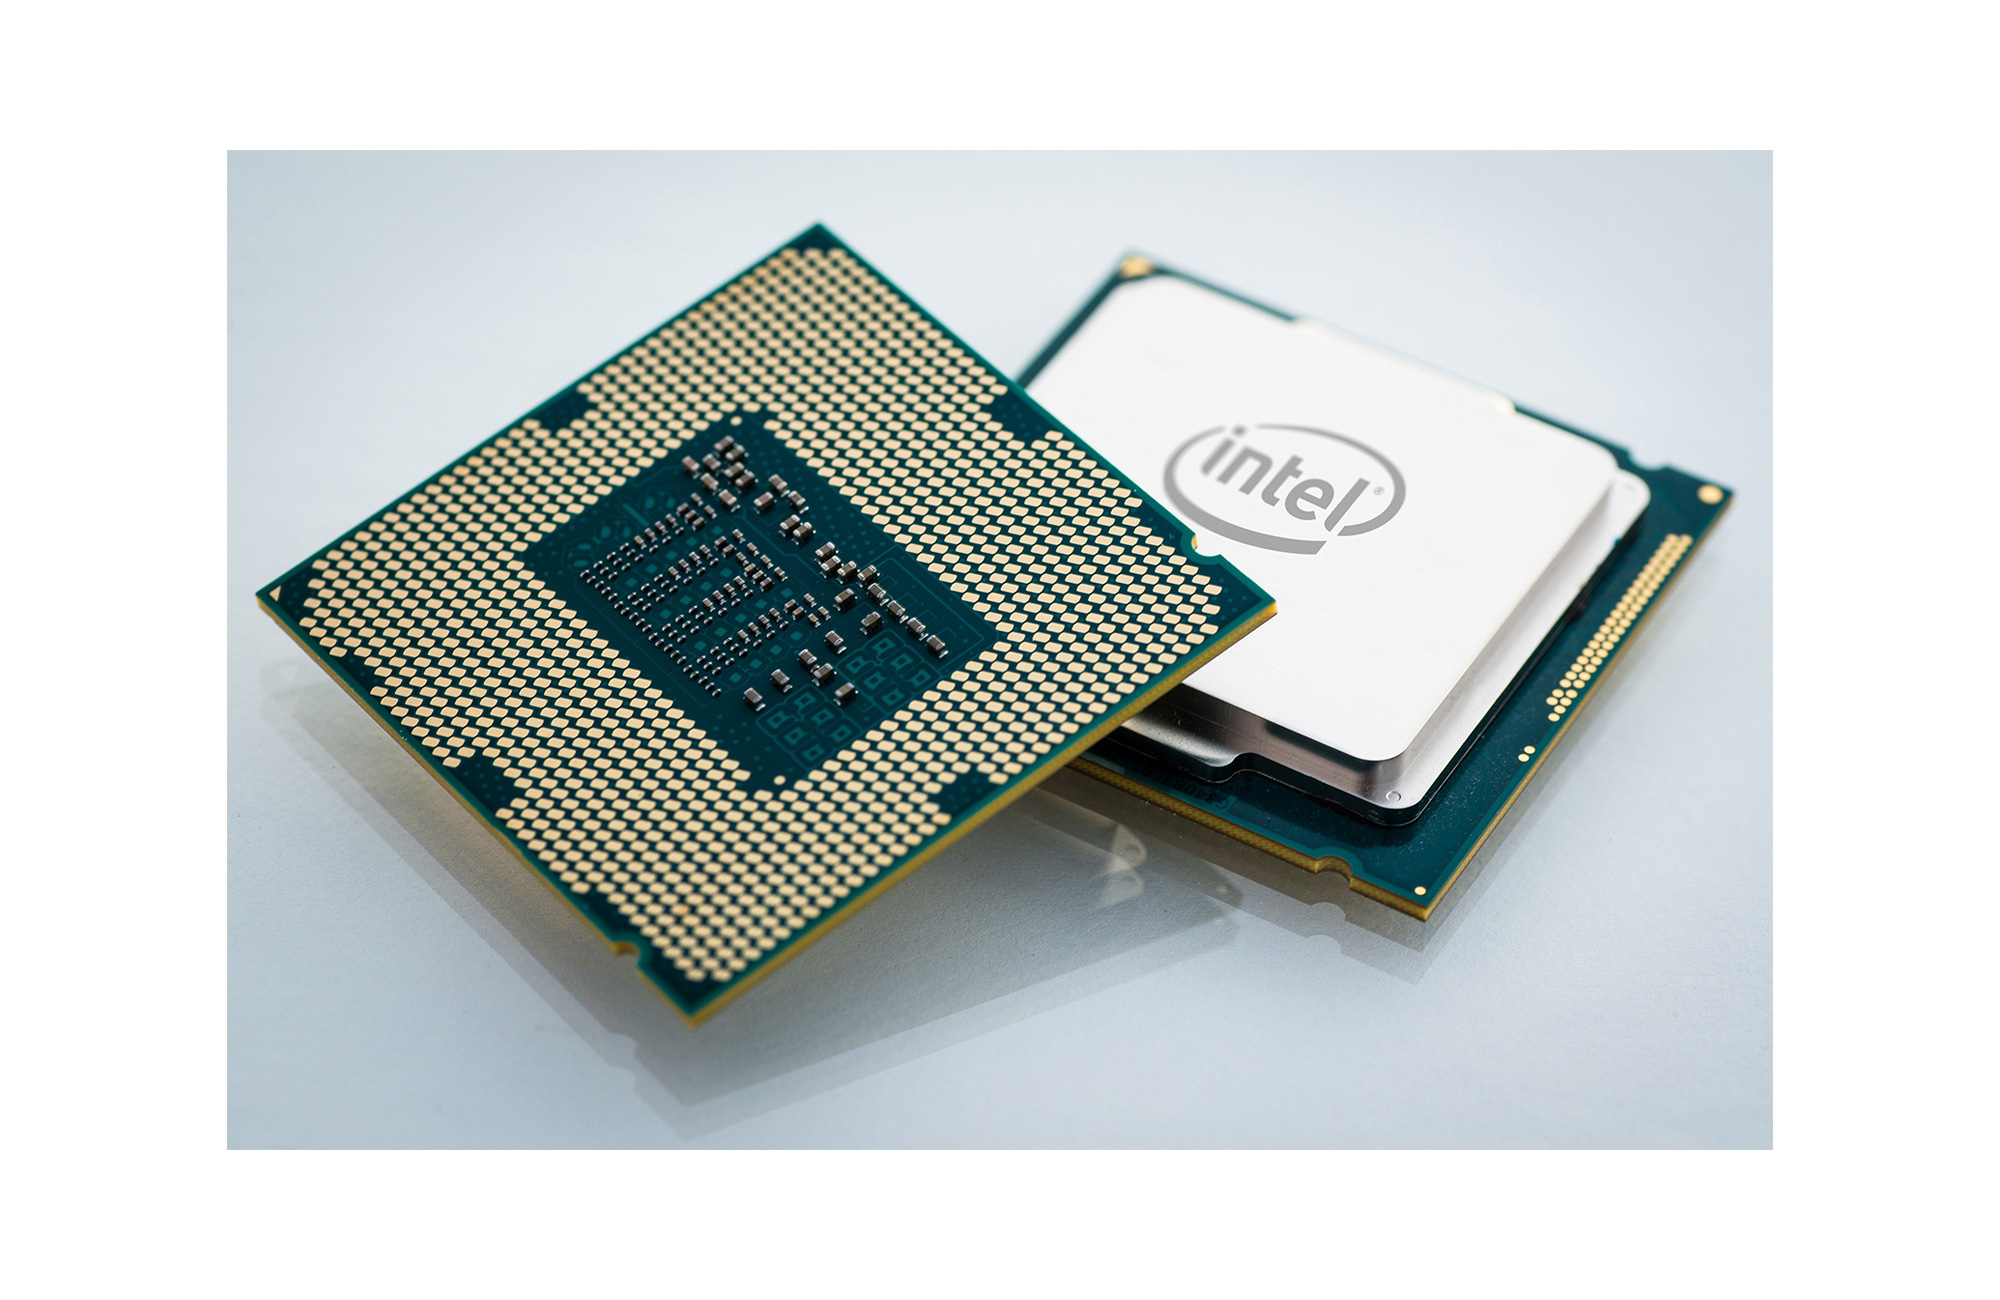 Intel klar med ny generation Core-processorer